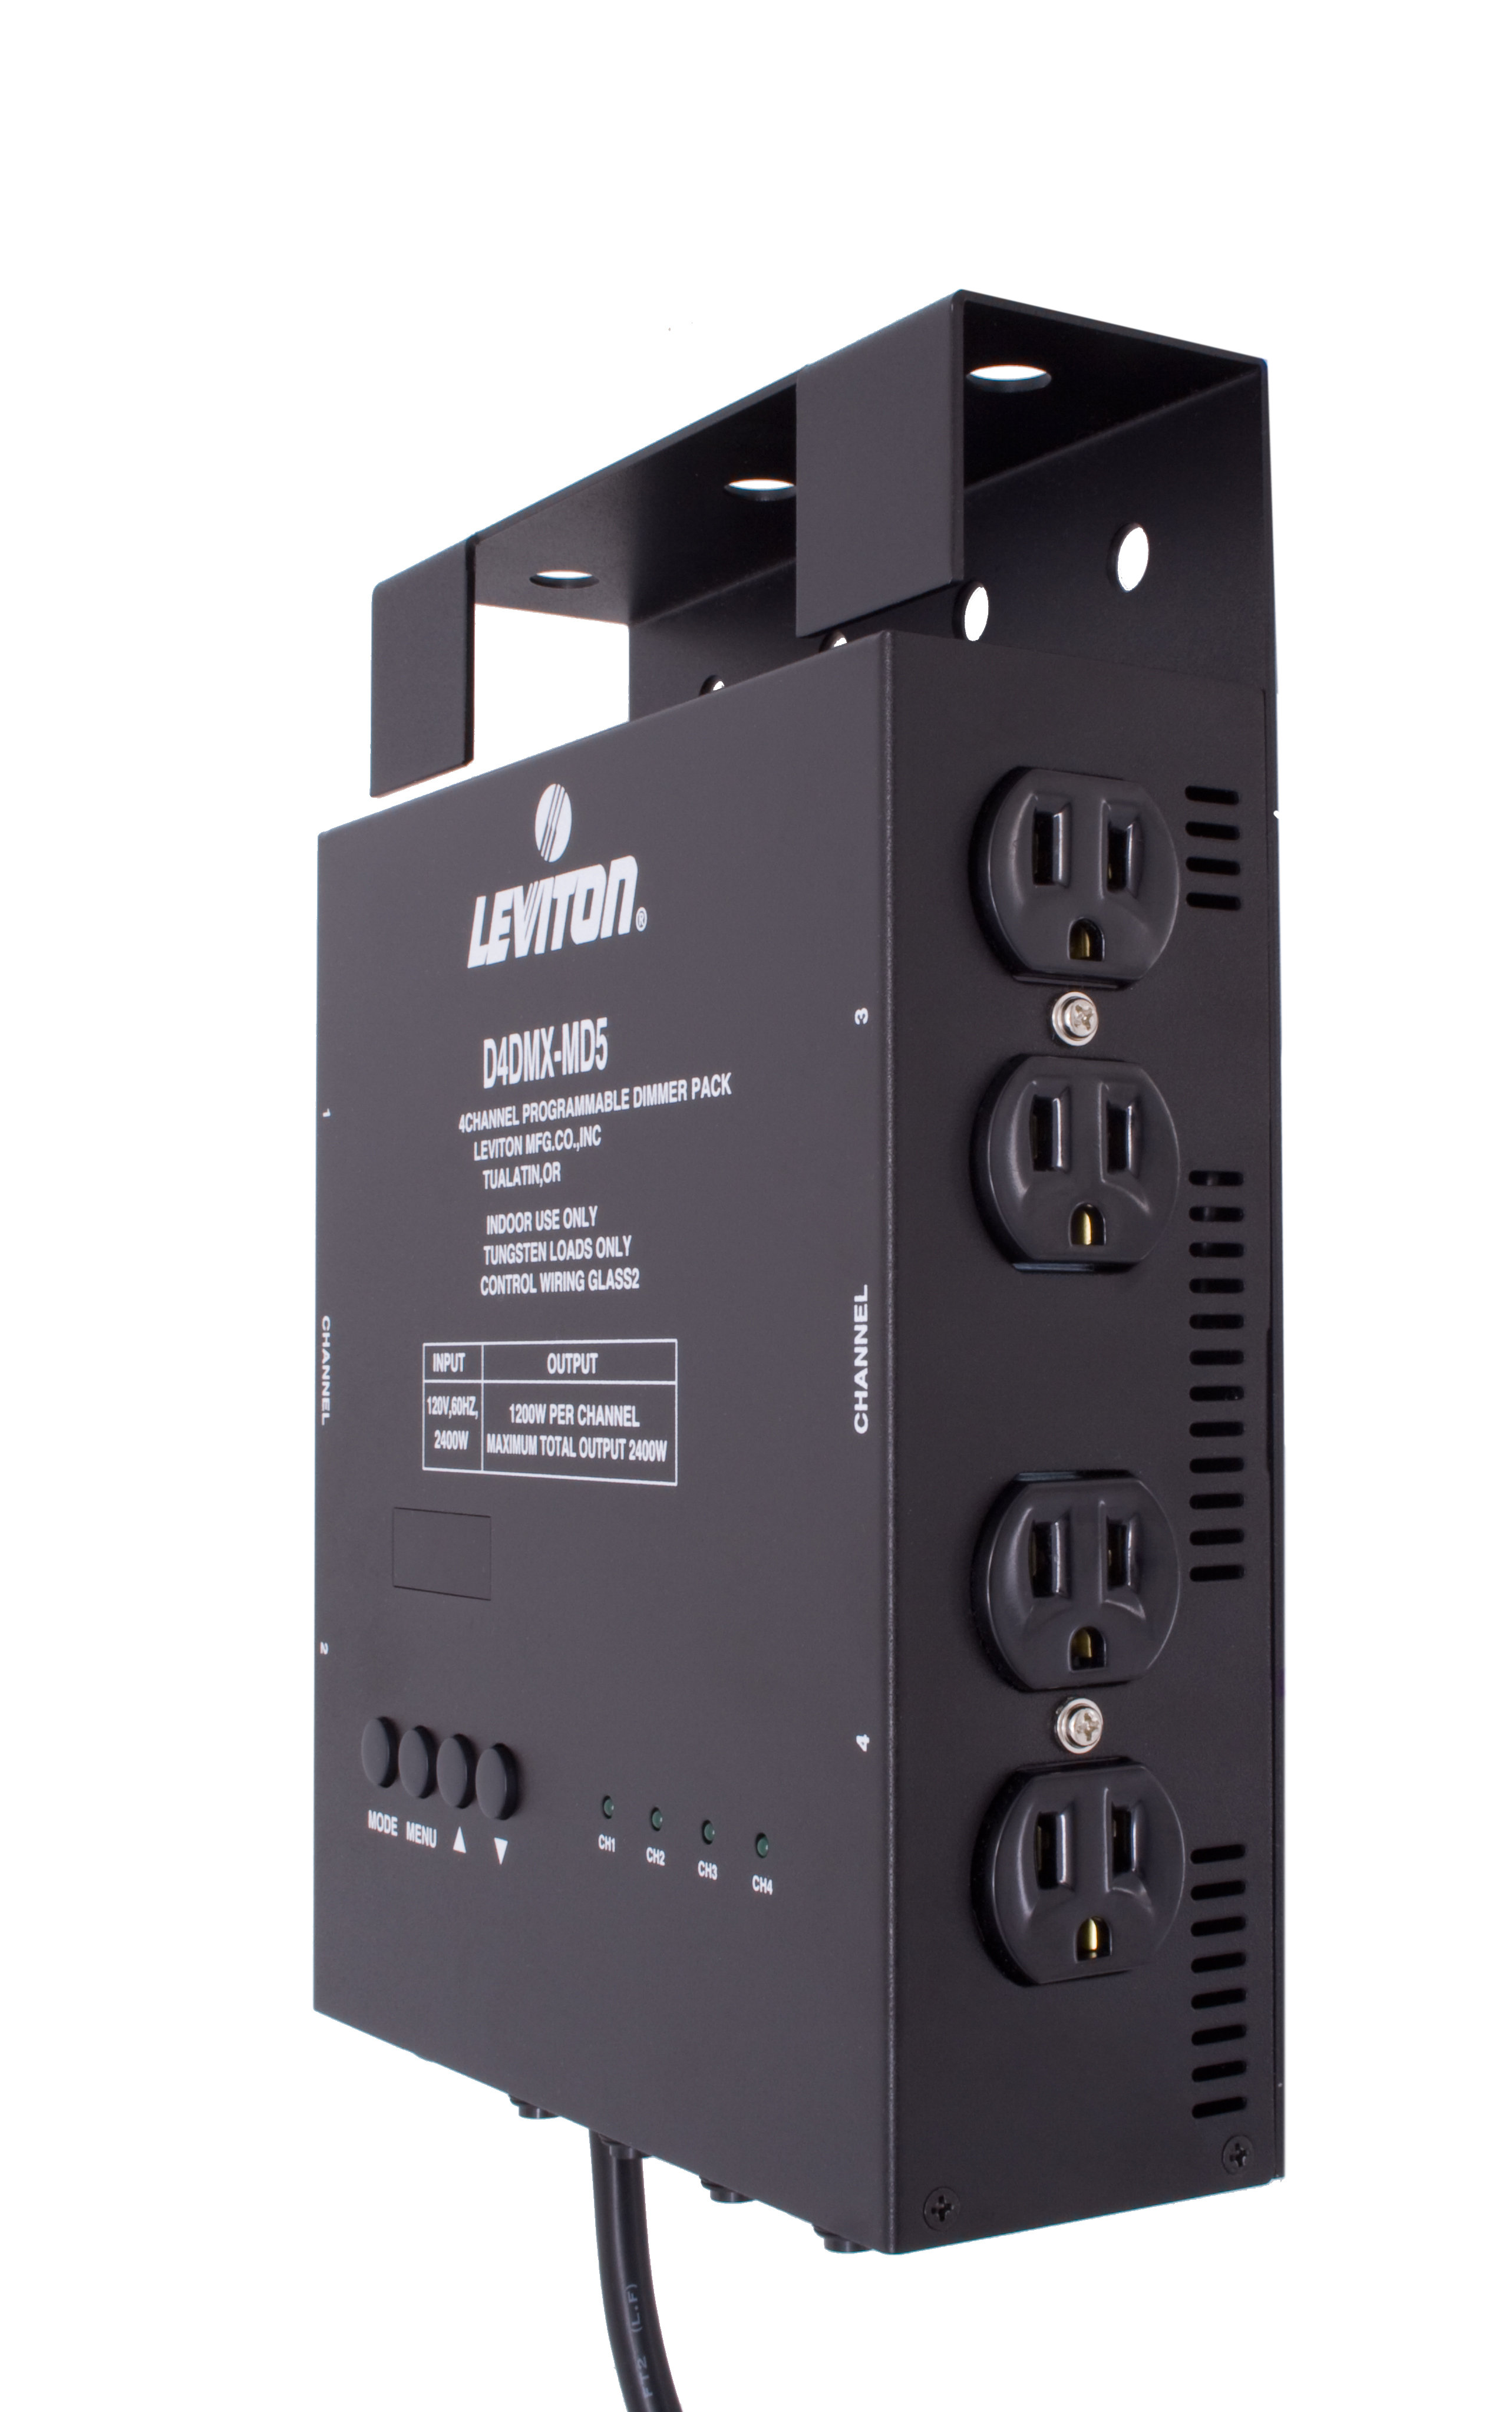 Sungard Exhibition Stand Here Alone : Leviton d dmx md channel programmable dimmer pack